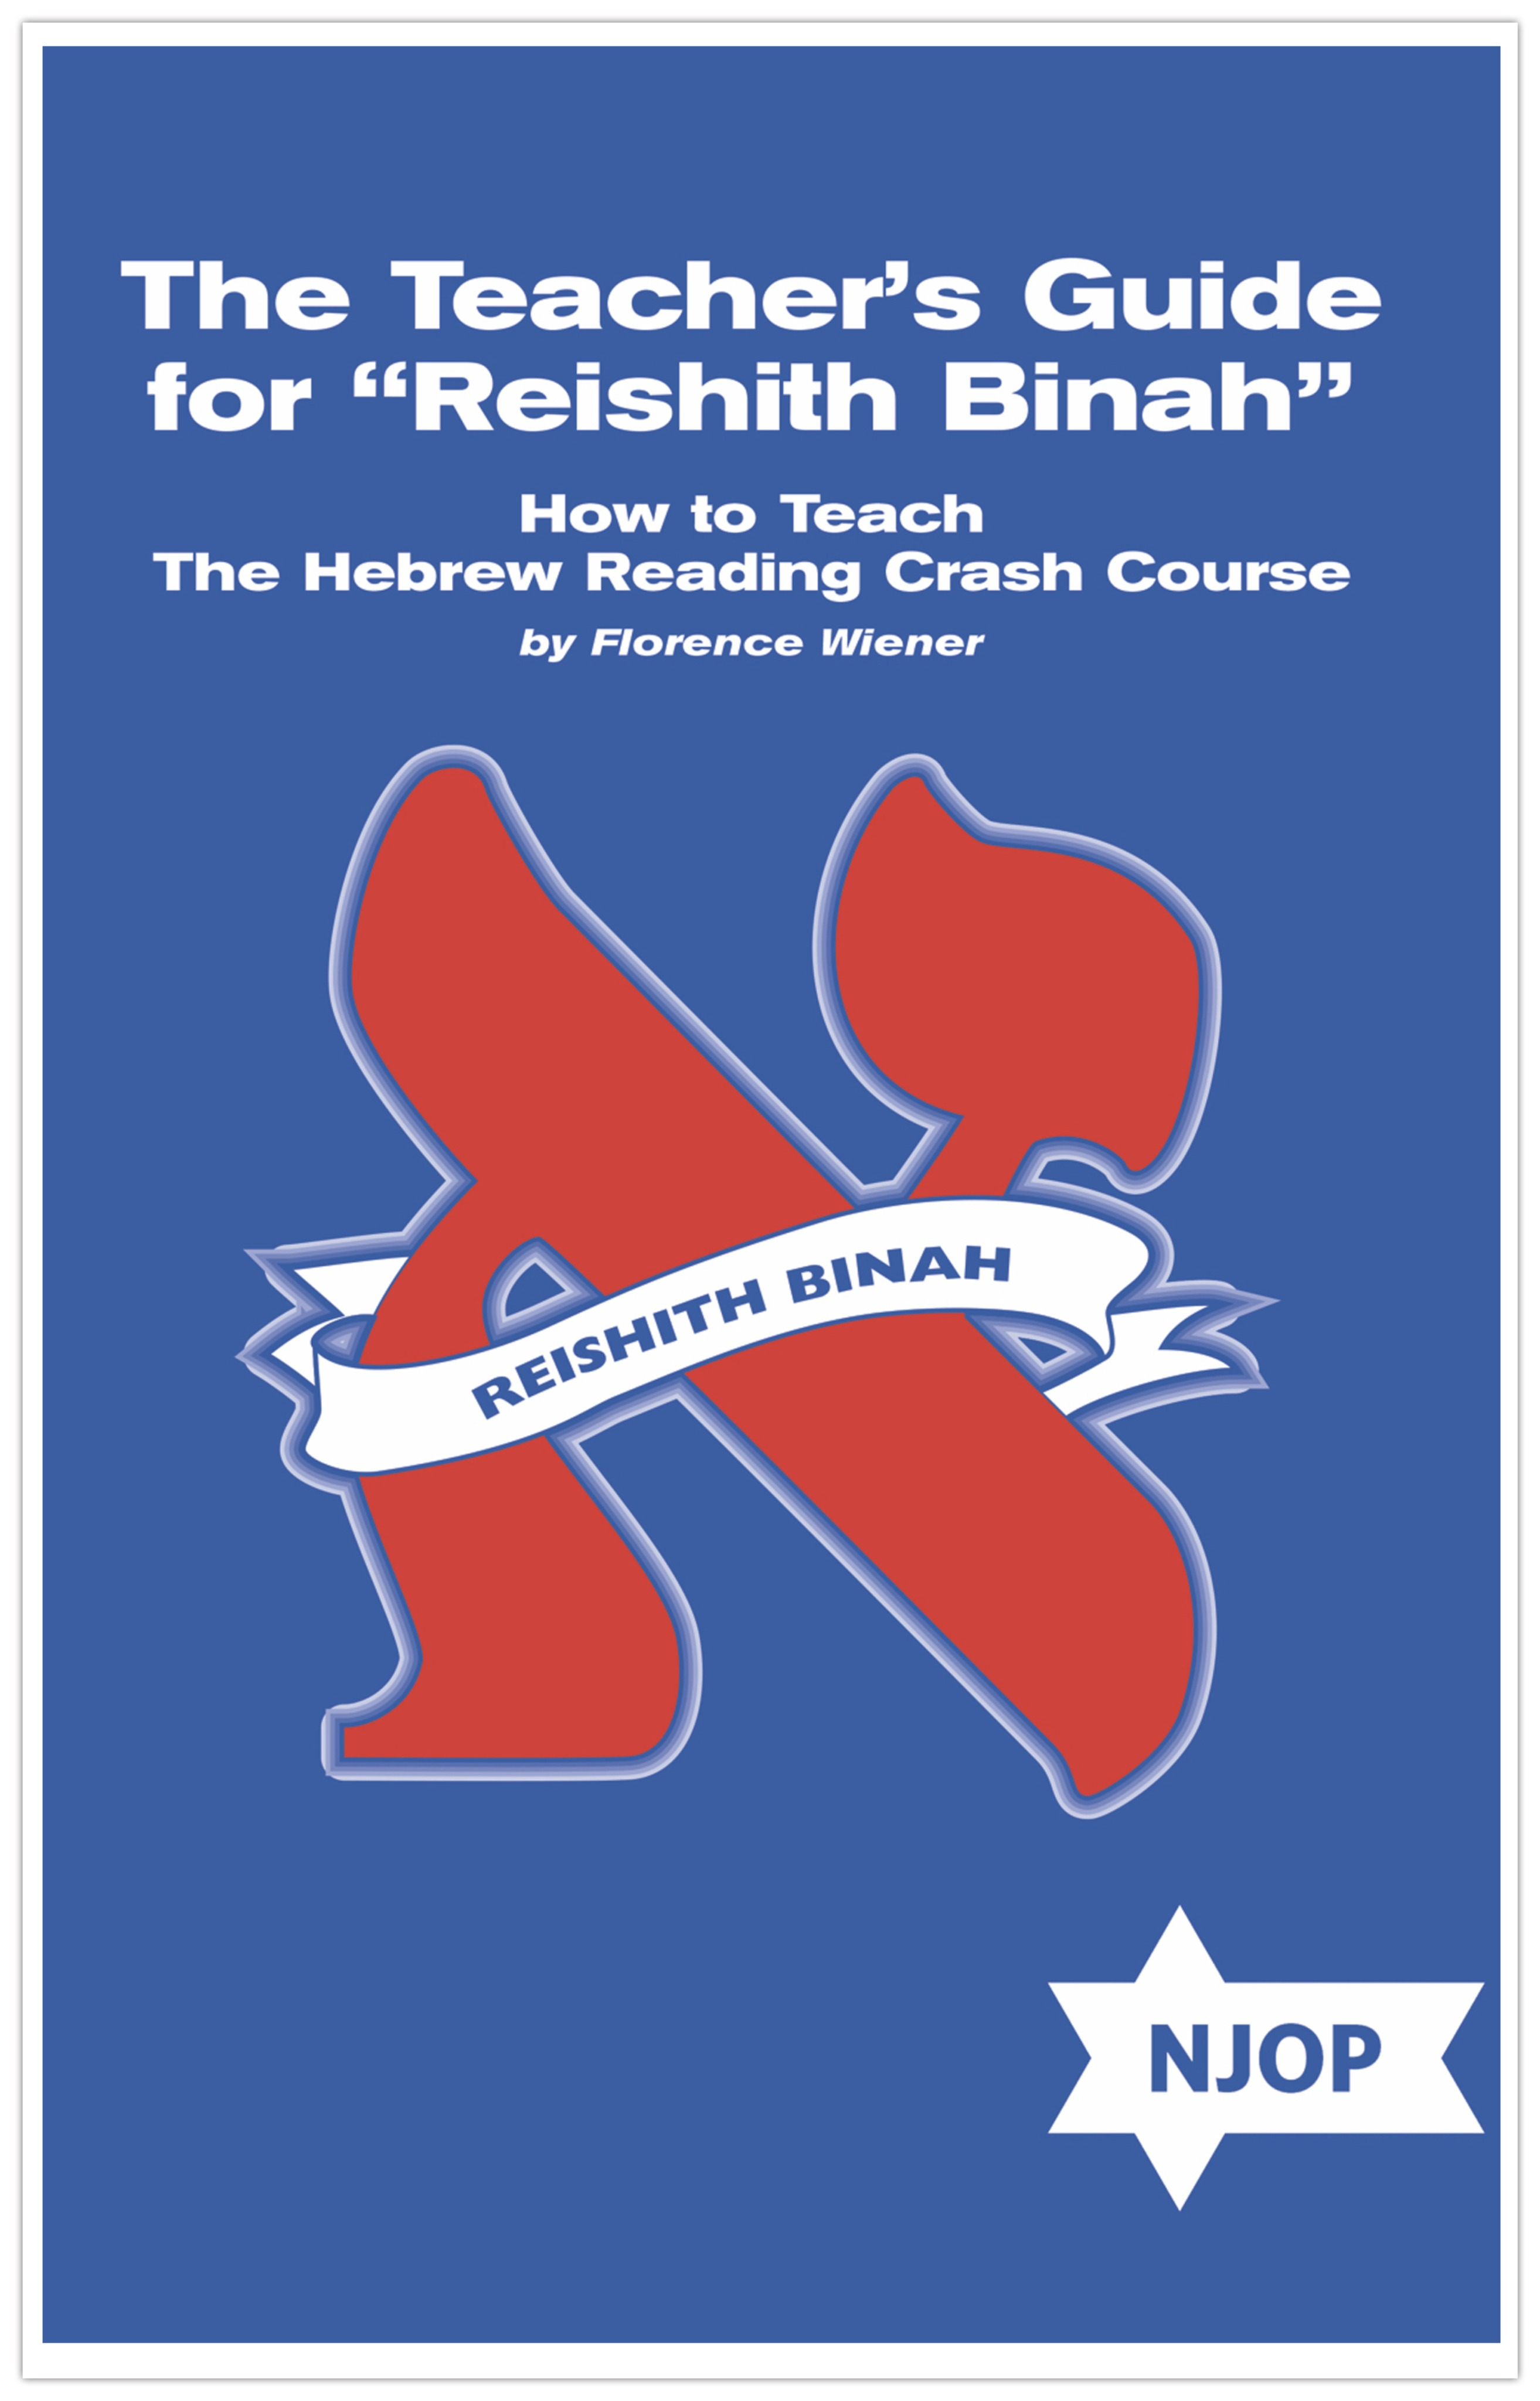 NJOP Hebrew Reading Crash Course Teacher's Guide Level 1